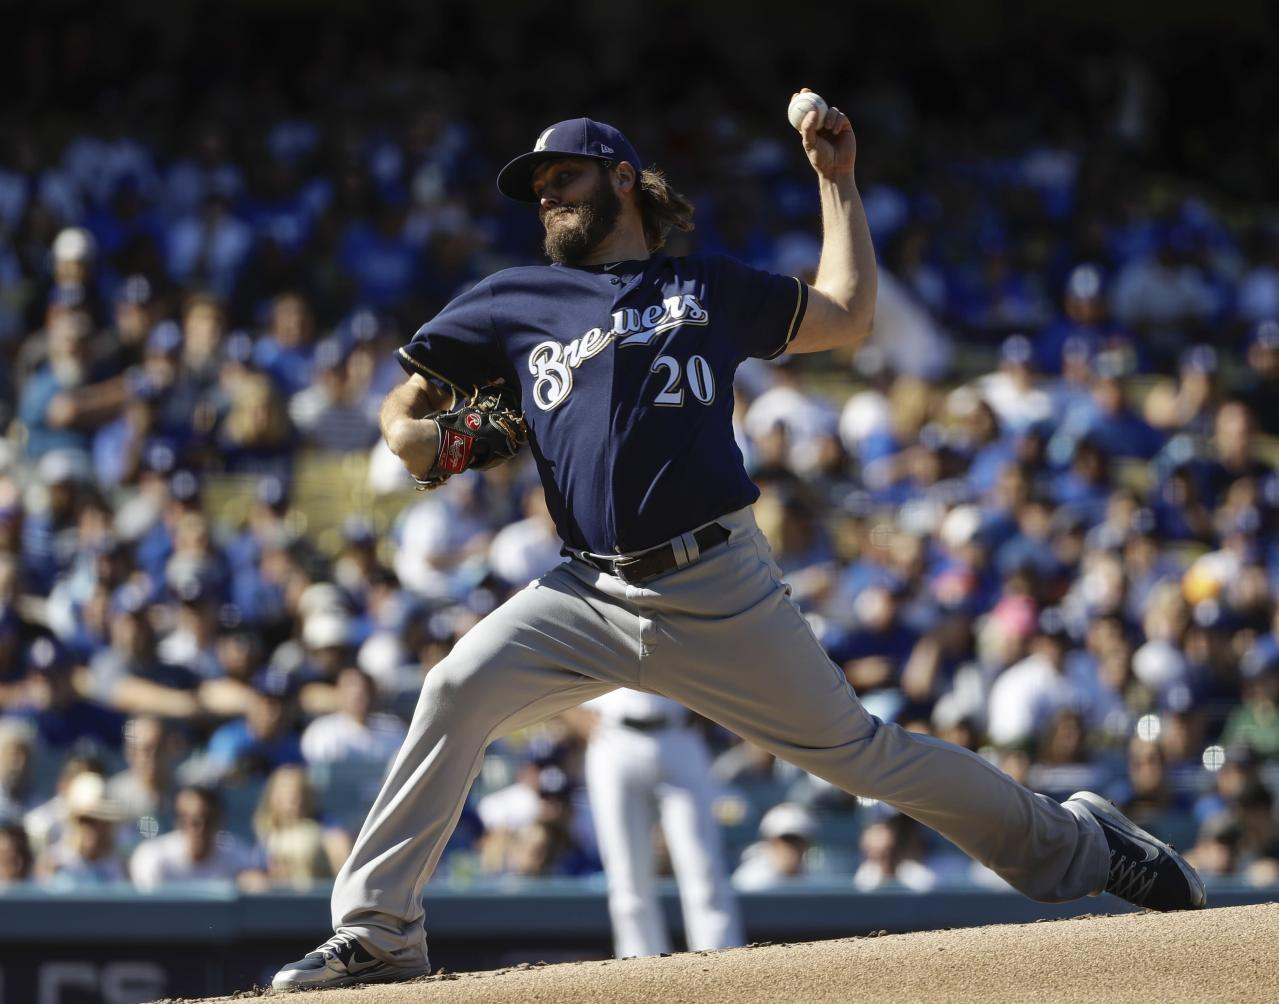 With Wade Miley as bait, Craig Counsell attempted to hustle the Dodgers